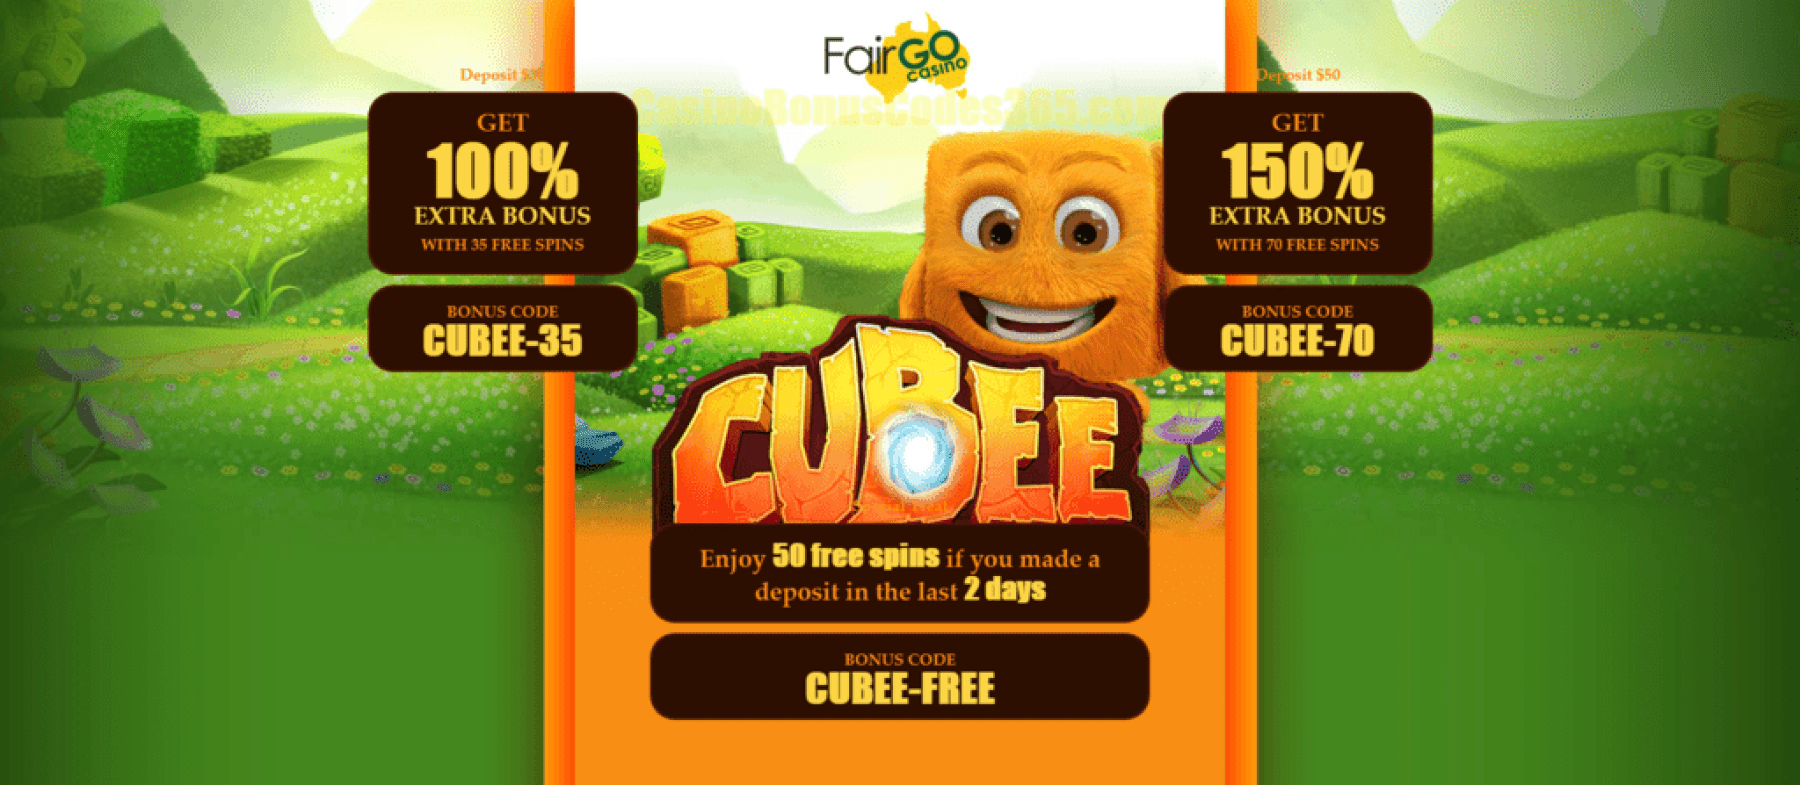 Fair Go Casino New RTG Game Cubee Bonuses and FREE Spins